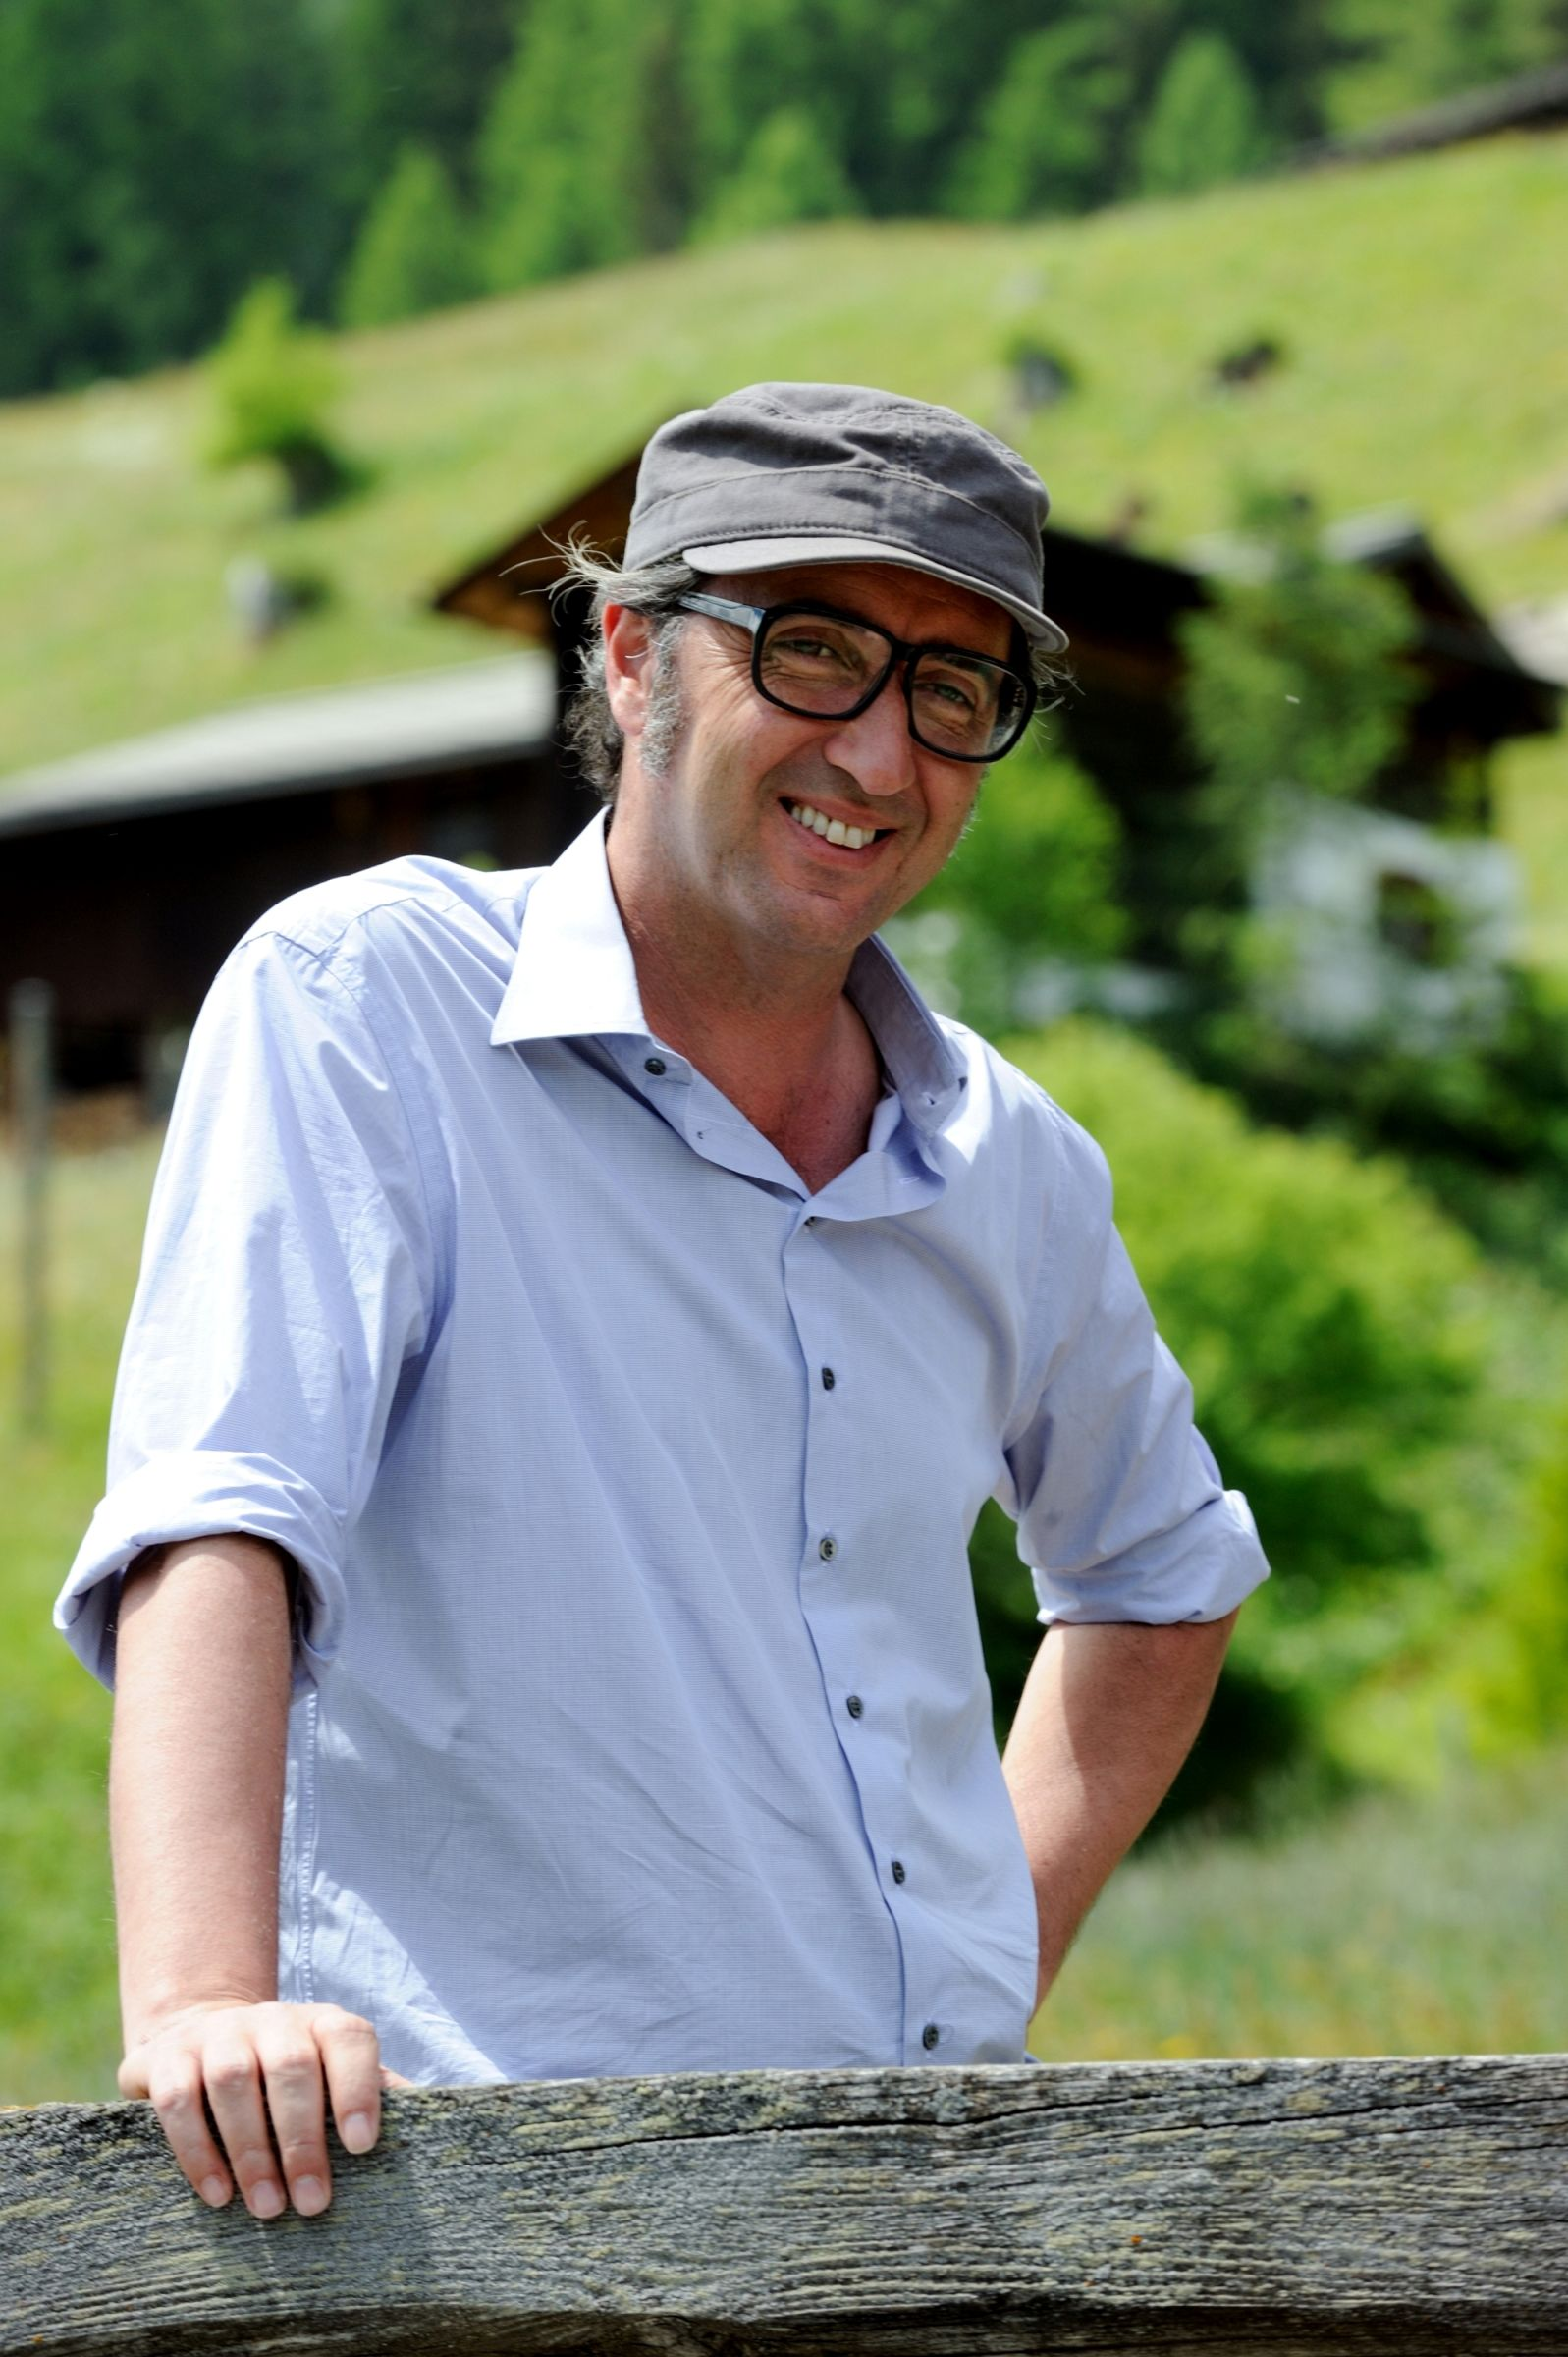 Youth - La giovinezza: Paolo Sorrentino sorridente sul set del film